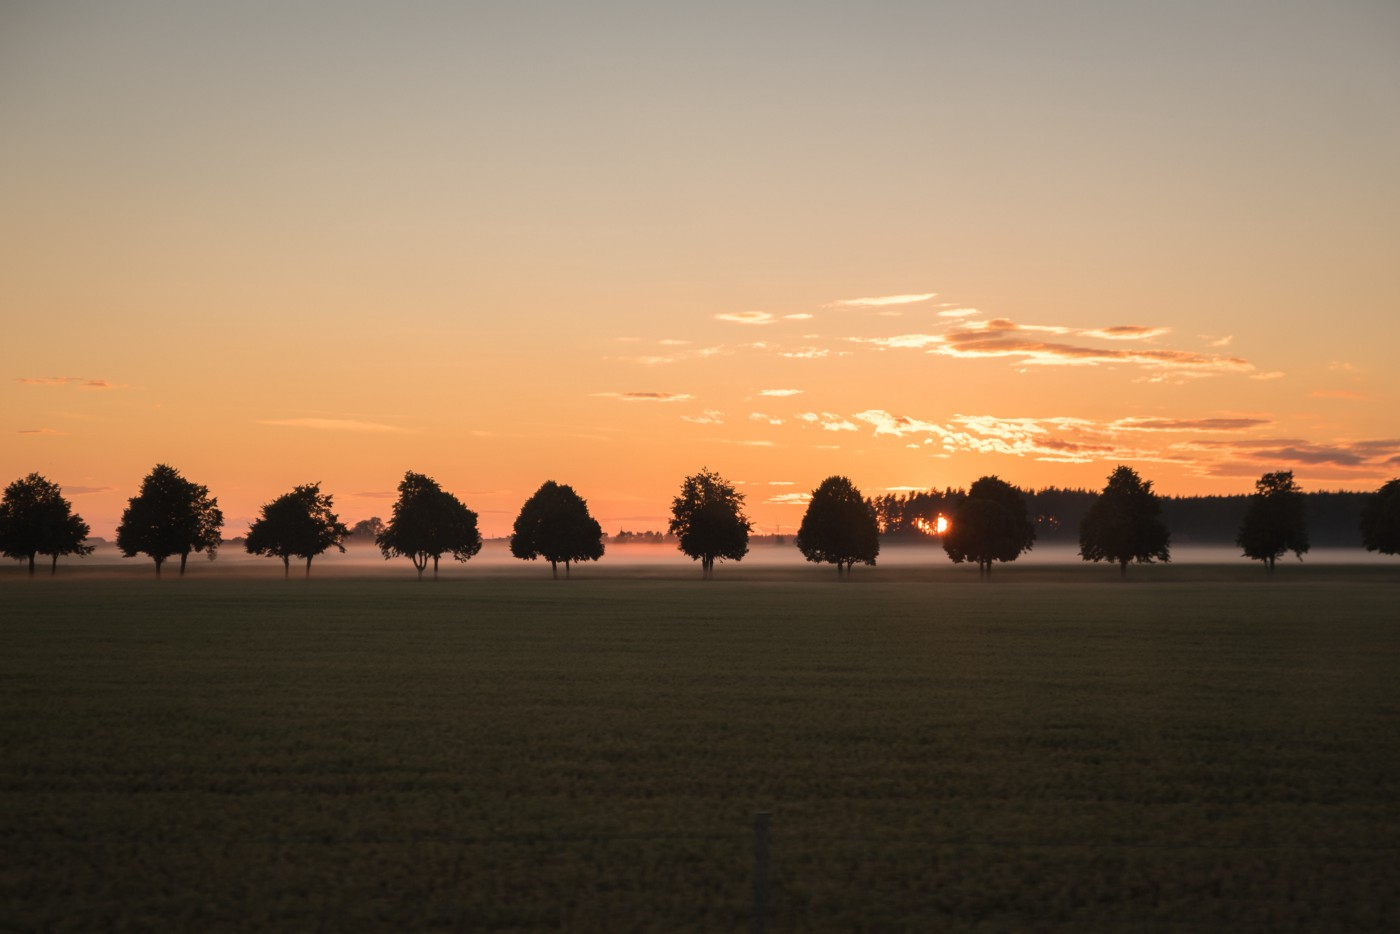 Row of trees with sunrise in background